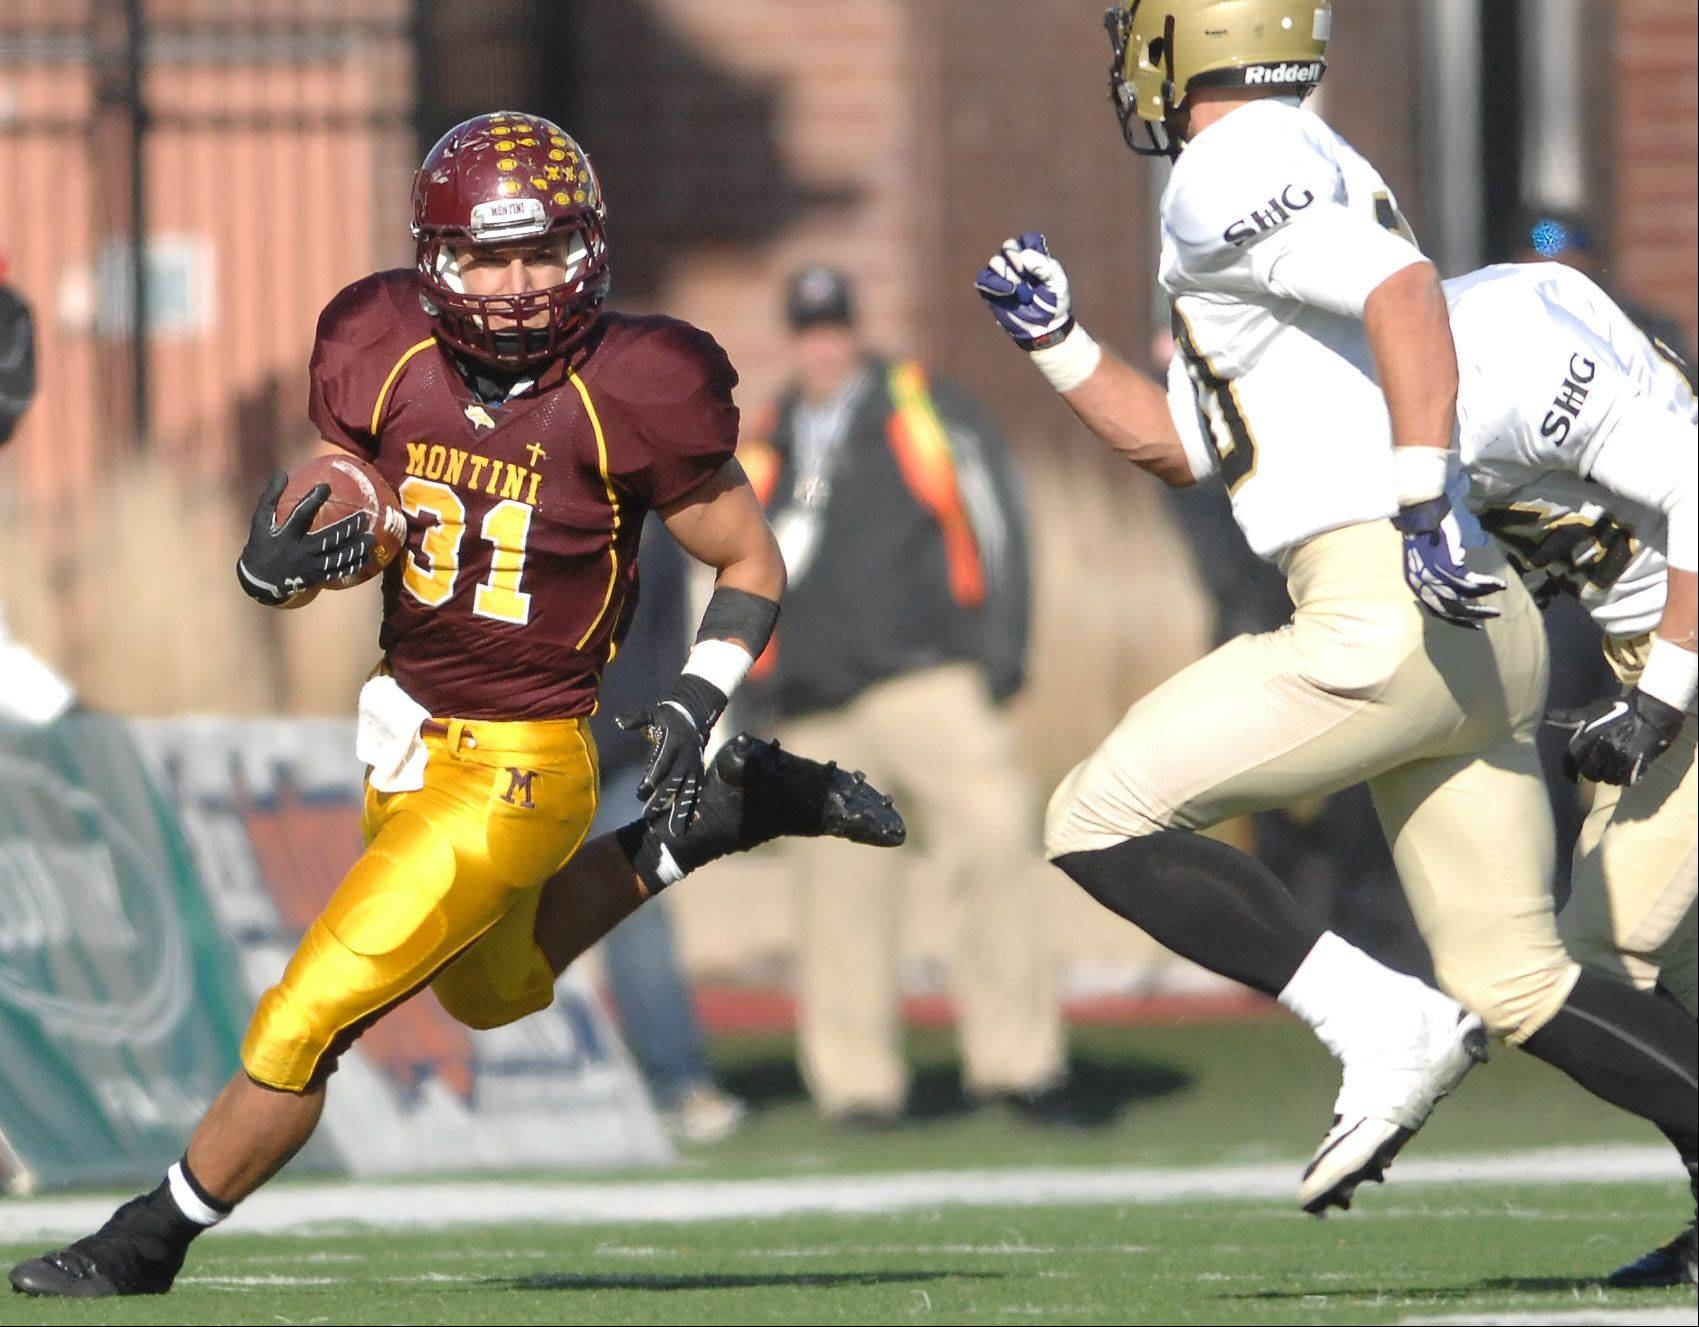 Montini's Nicholas Italia (31) breaks to the outside against Sacred Heart-Griffin during Saturday's 5A championship game in DeKalb.